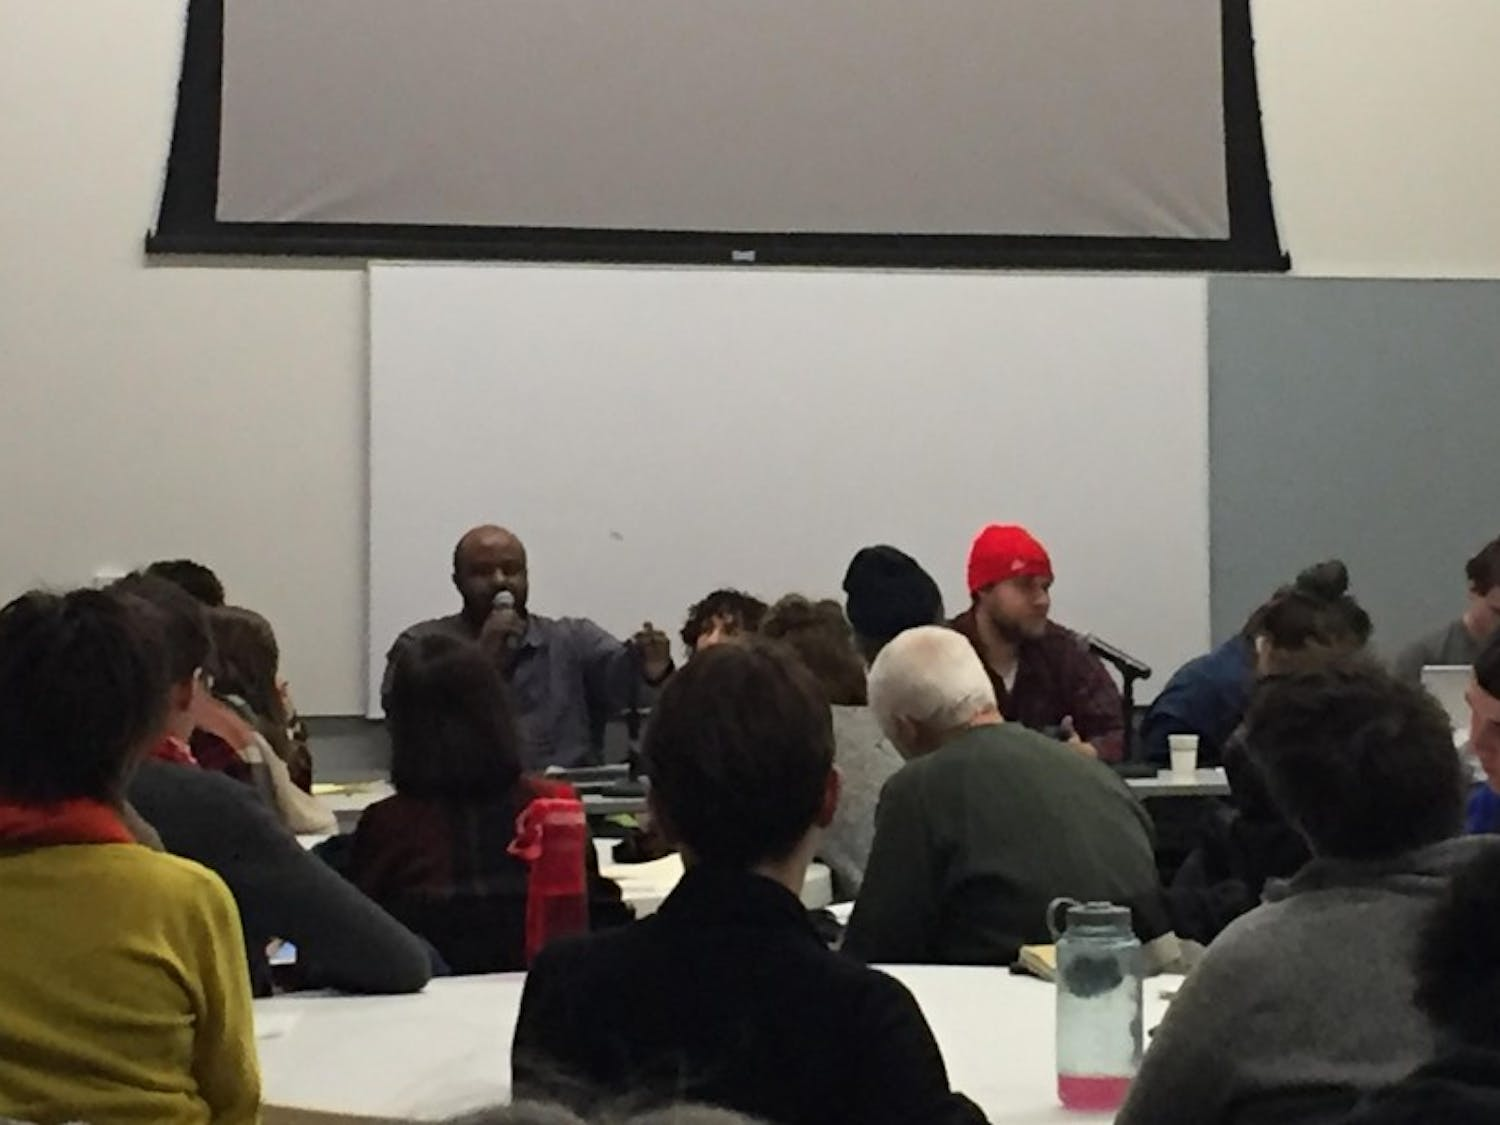 The Derail the Jail movement held a teach-in Monday night in order to increase awareness about what they call racially unjust government practices, specifically surrounding mass incarceration.